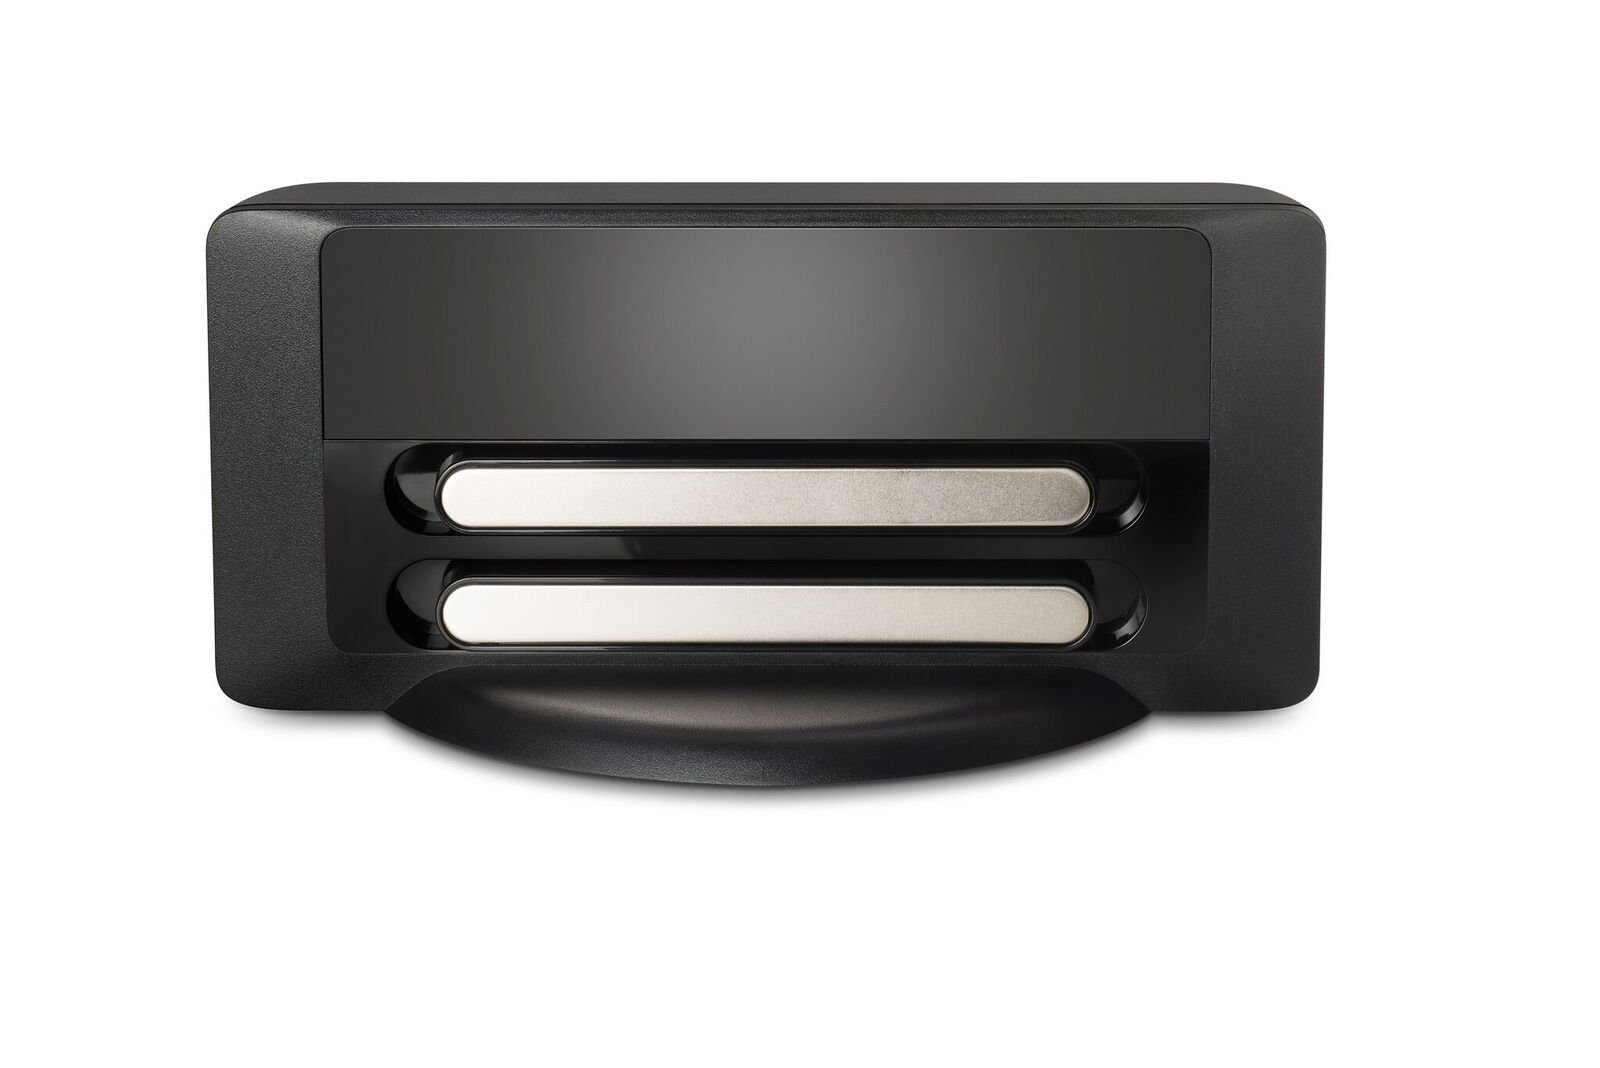 Neato Robotics 945-0260 Charge Base for Botvac Connected Series, Black by Neato Robotics